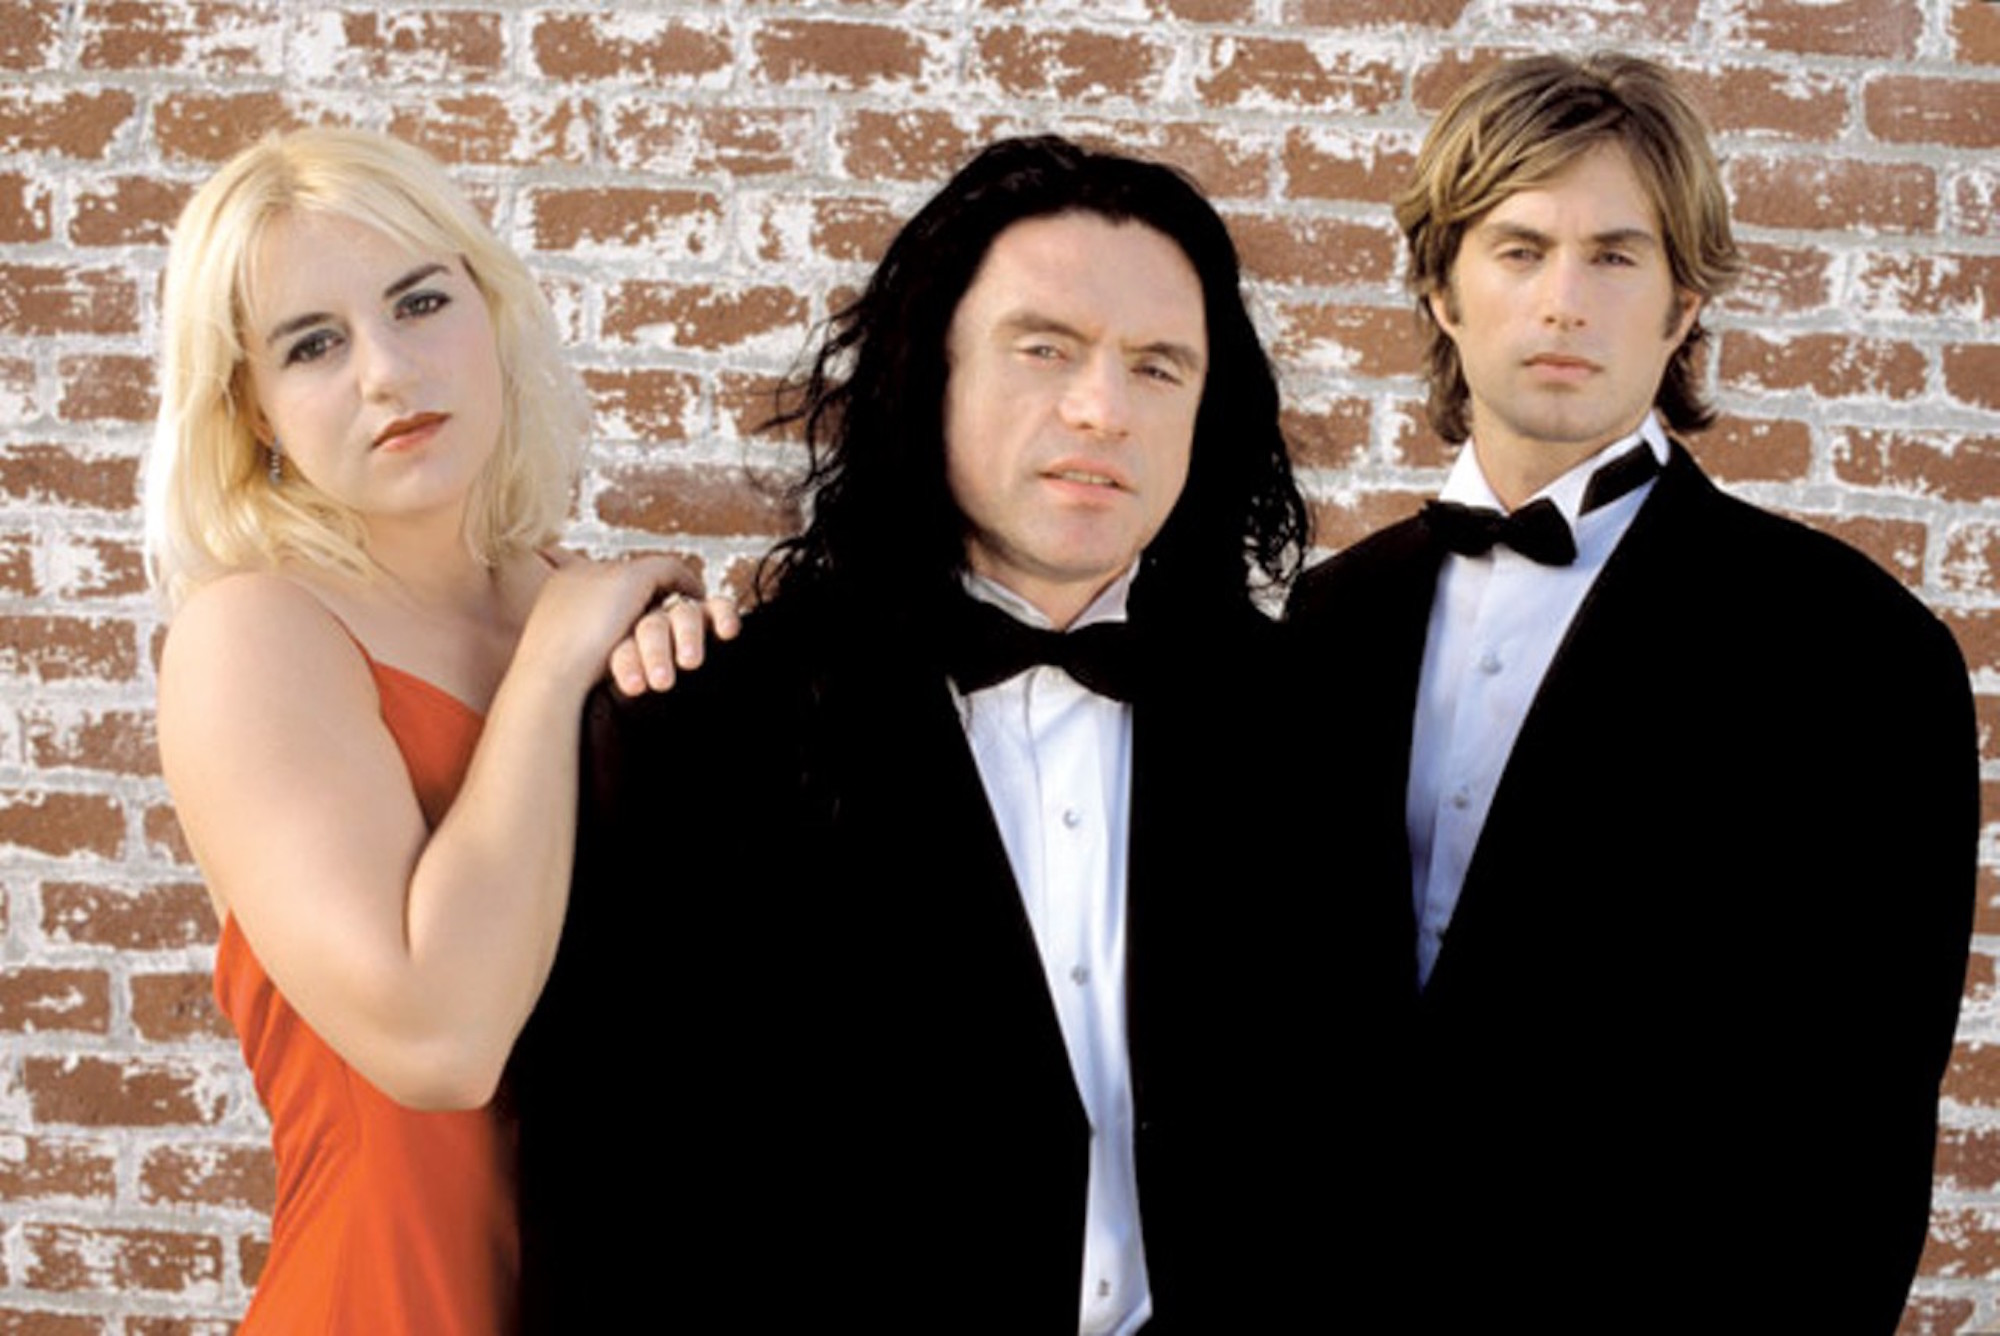 What the cast of The Room looks like today